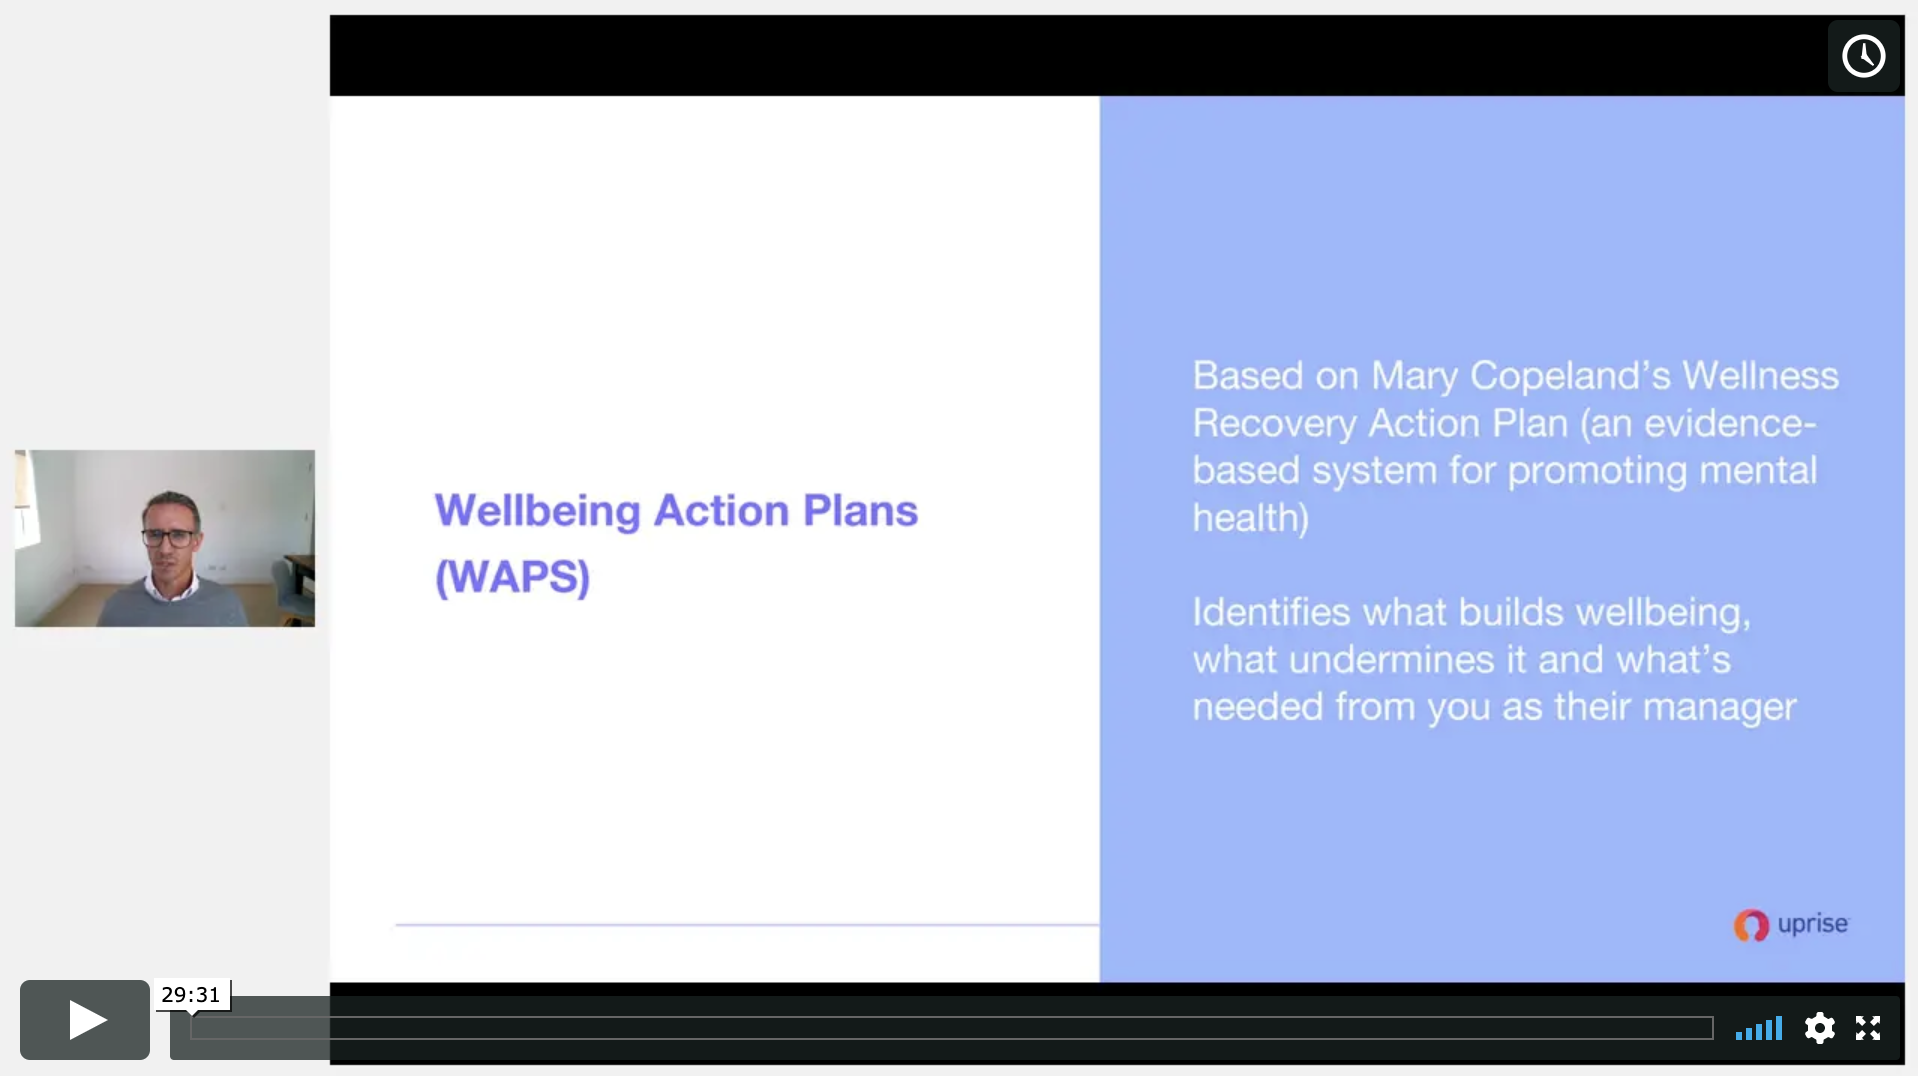 Wellbeing action plans